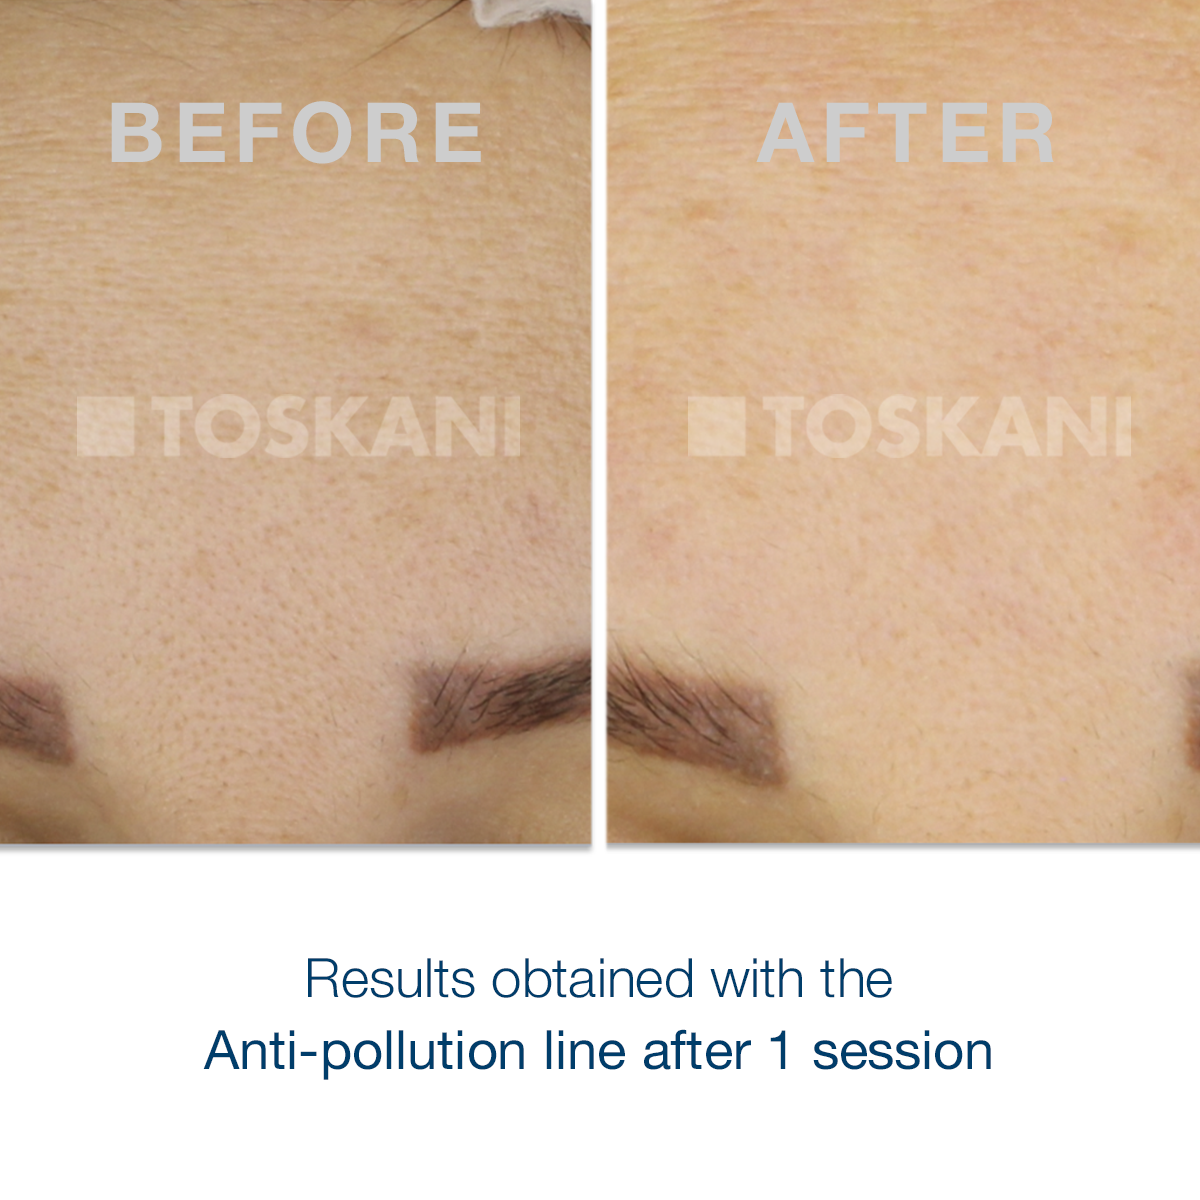 TKN_antipollution_before_after